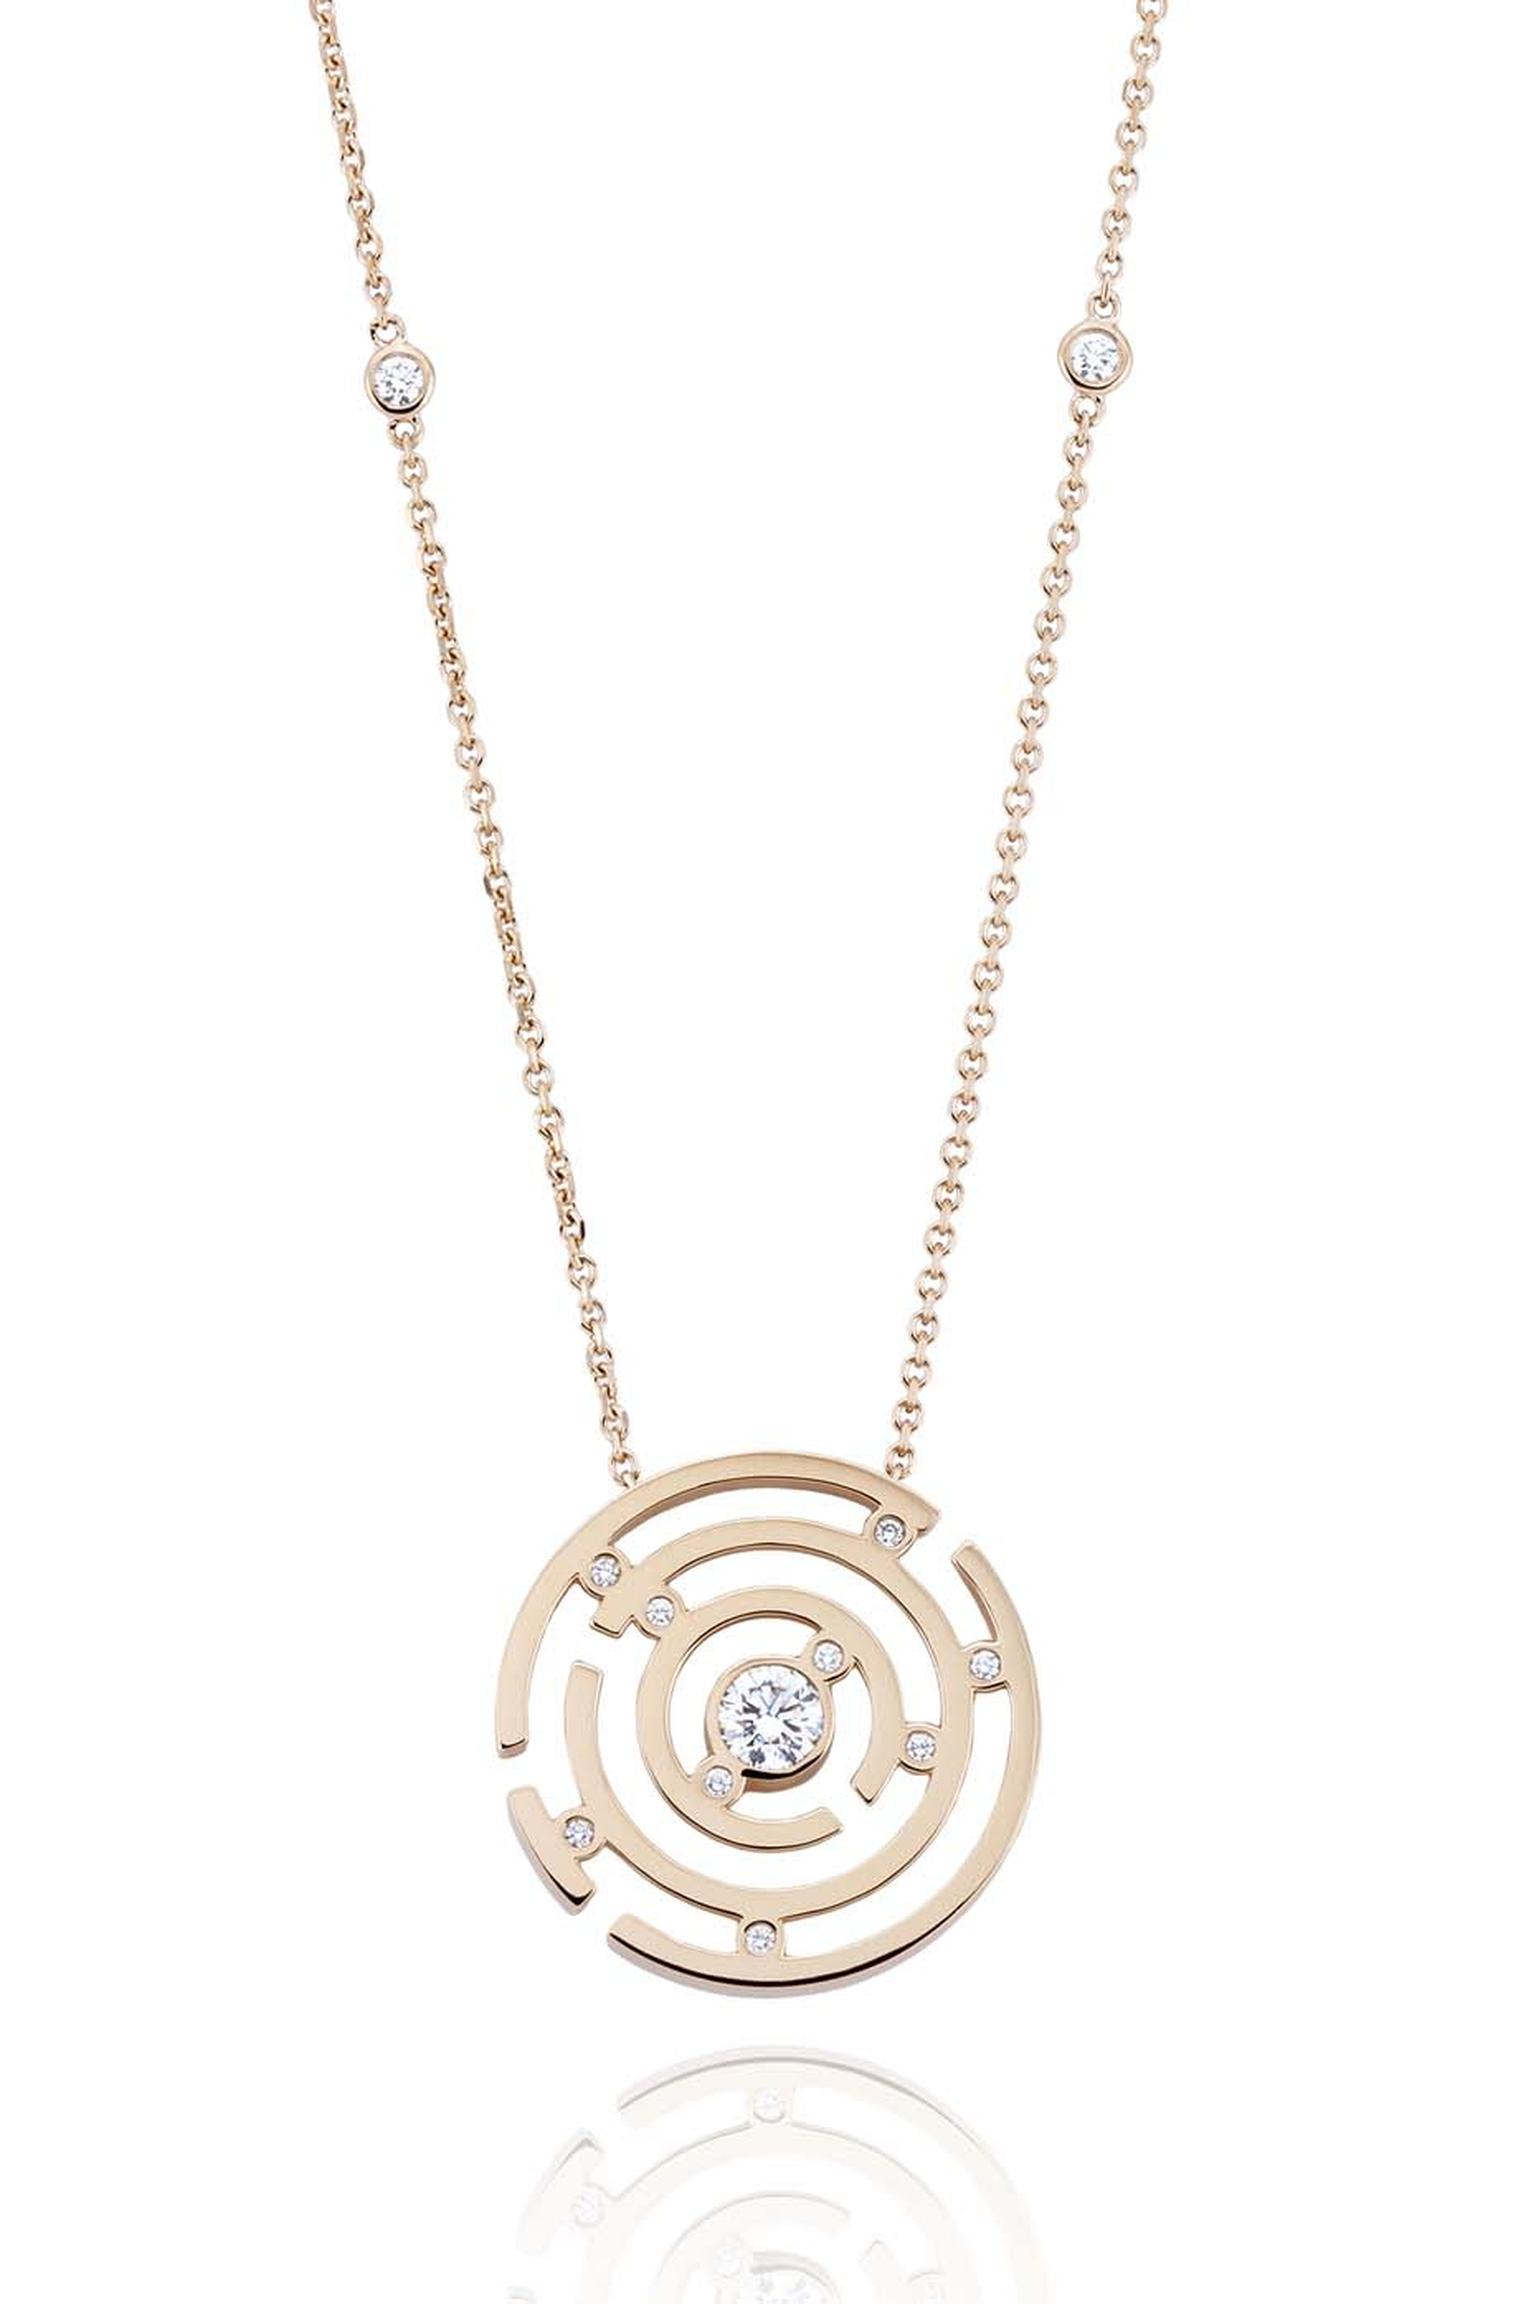 Boodles Maze diamond and rose gold necklace (£5,000).